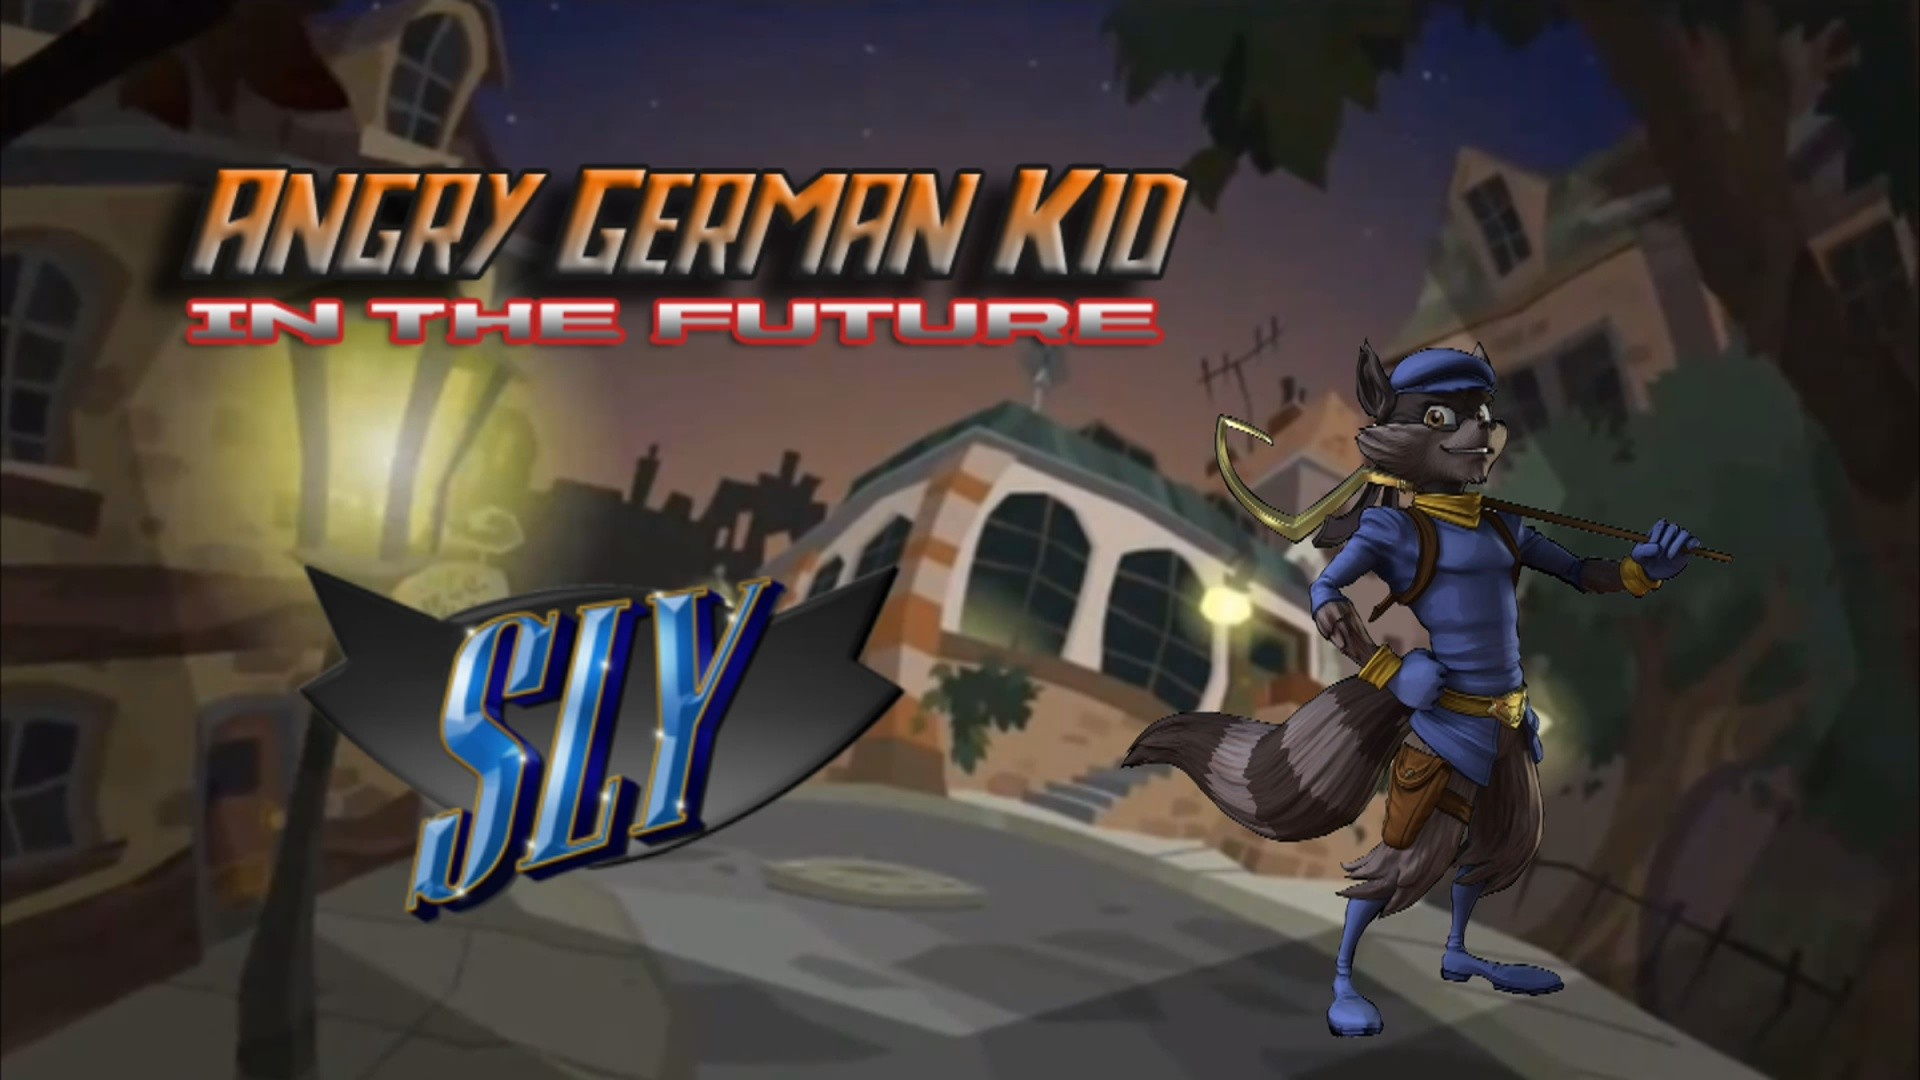 Image – Sly Cooper Wallpaper.jpg | Angry German Kid Wiki | FANDOM powered  by Wikia